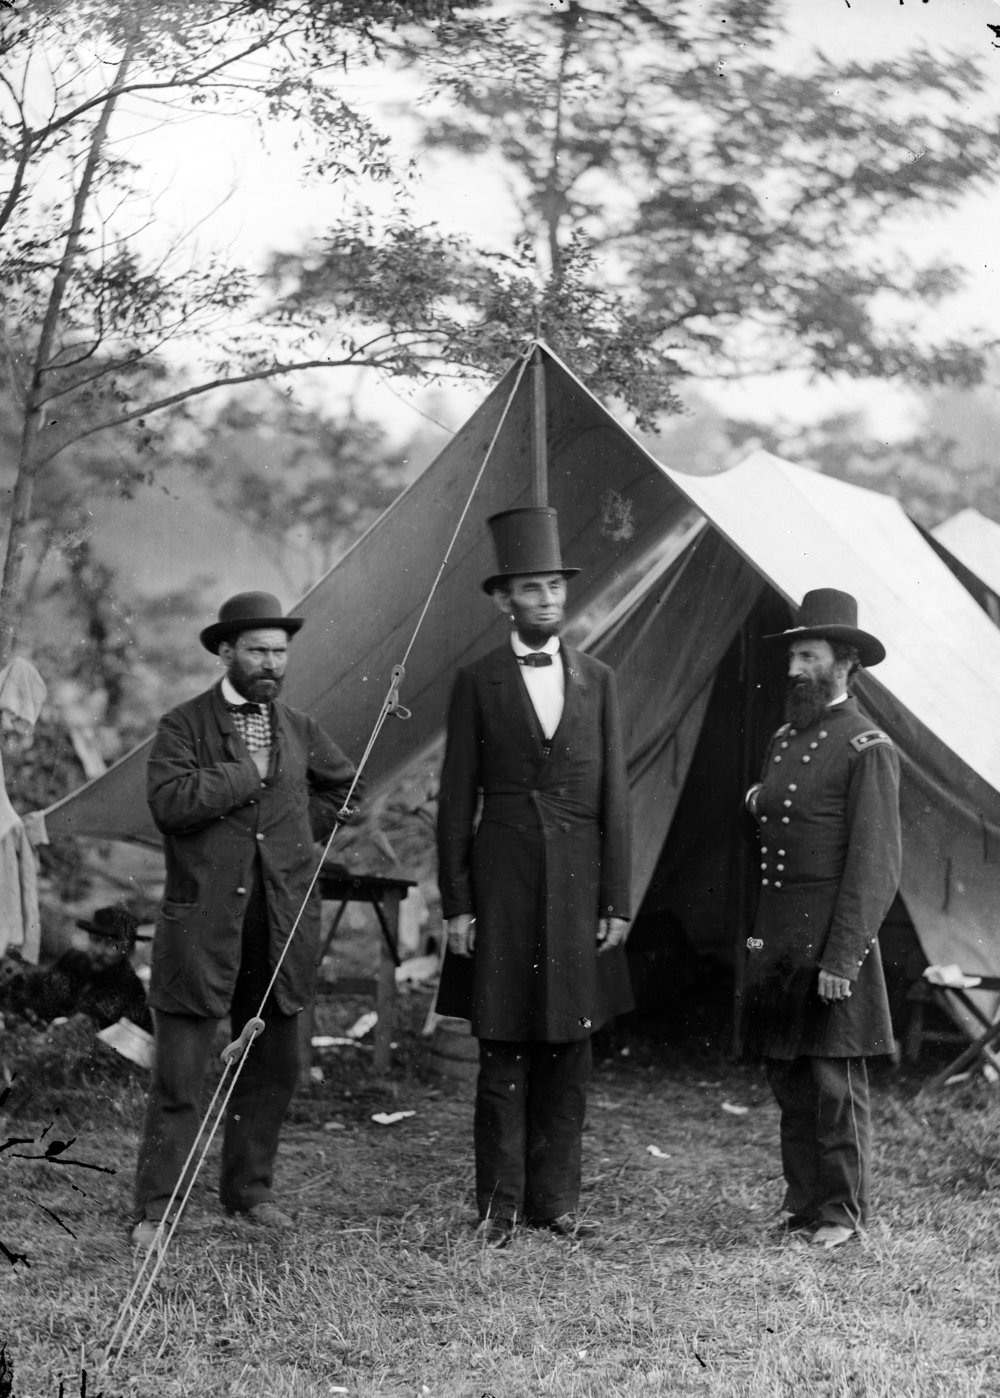 Allan Pinkerton hanging out with Abe Lincoln, looking all serious as they contemplate all the spies they're going to catch.   Courtesy of the Library of Congress.